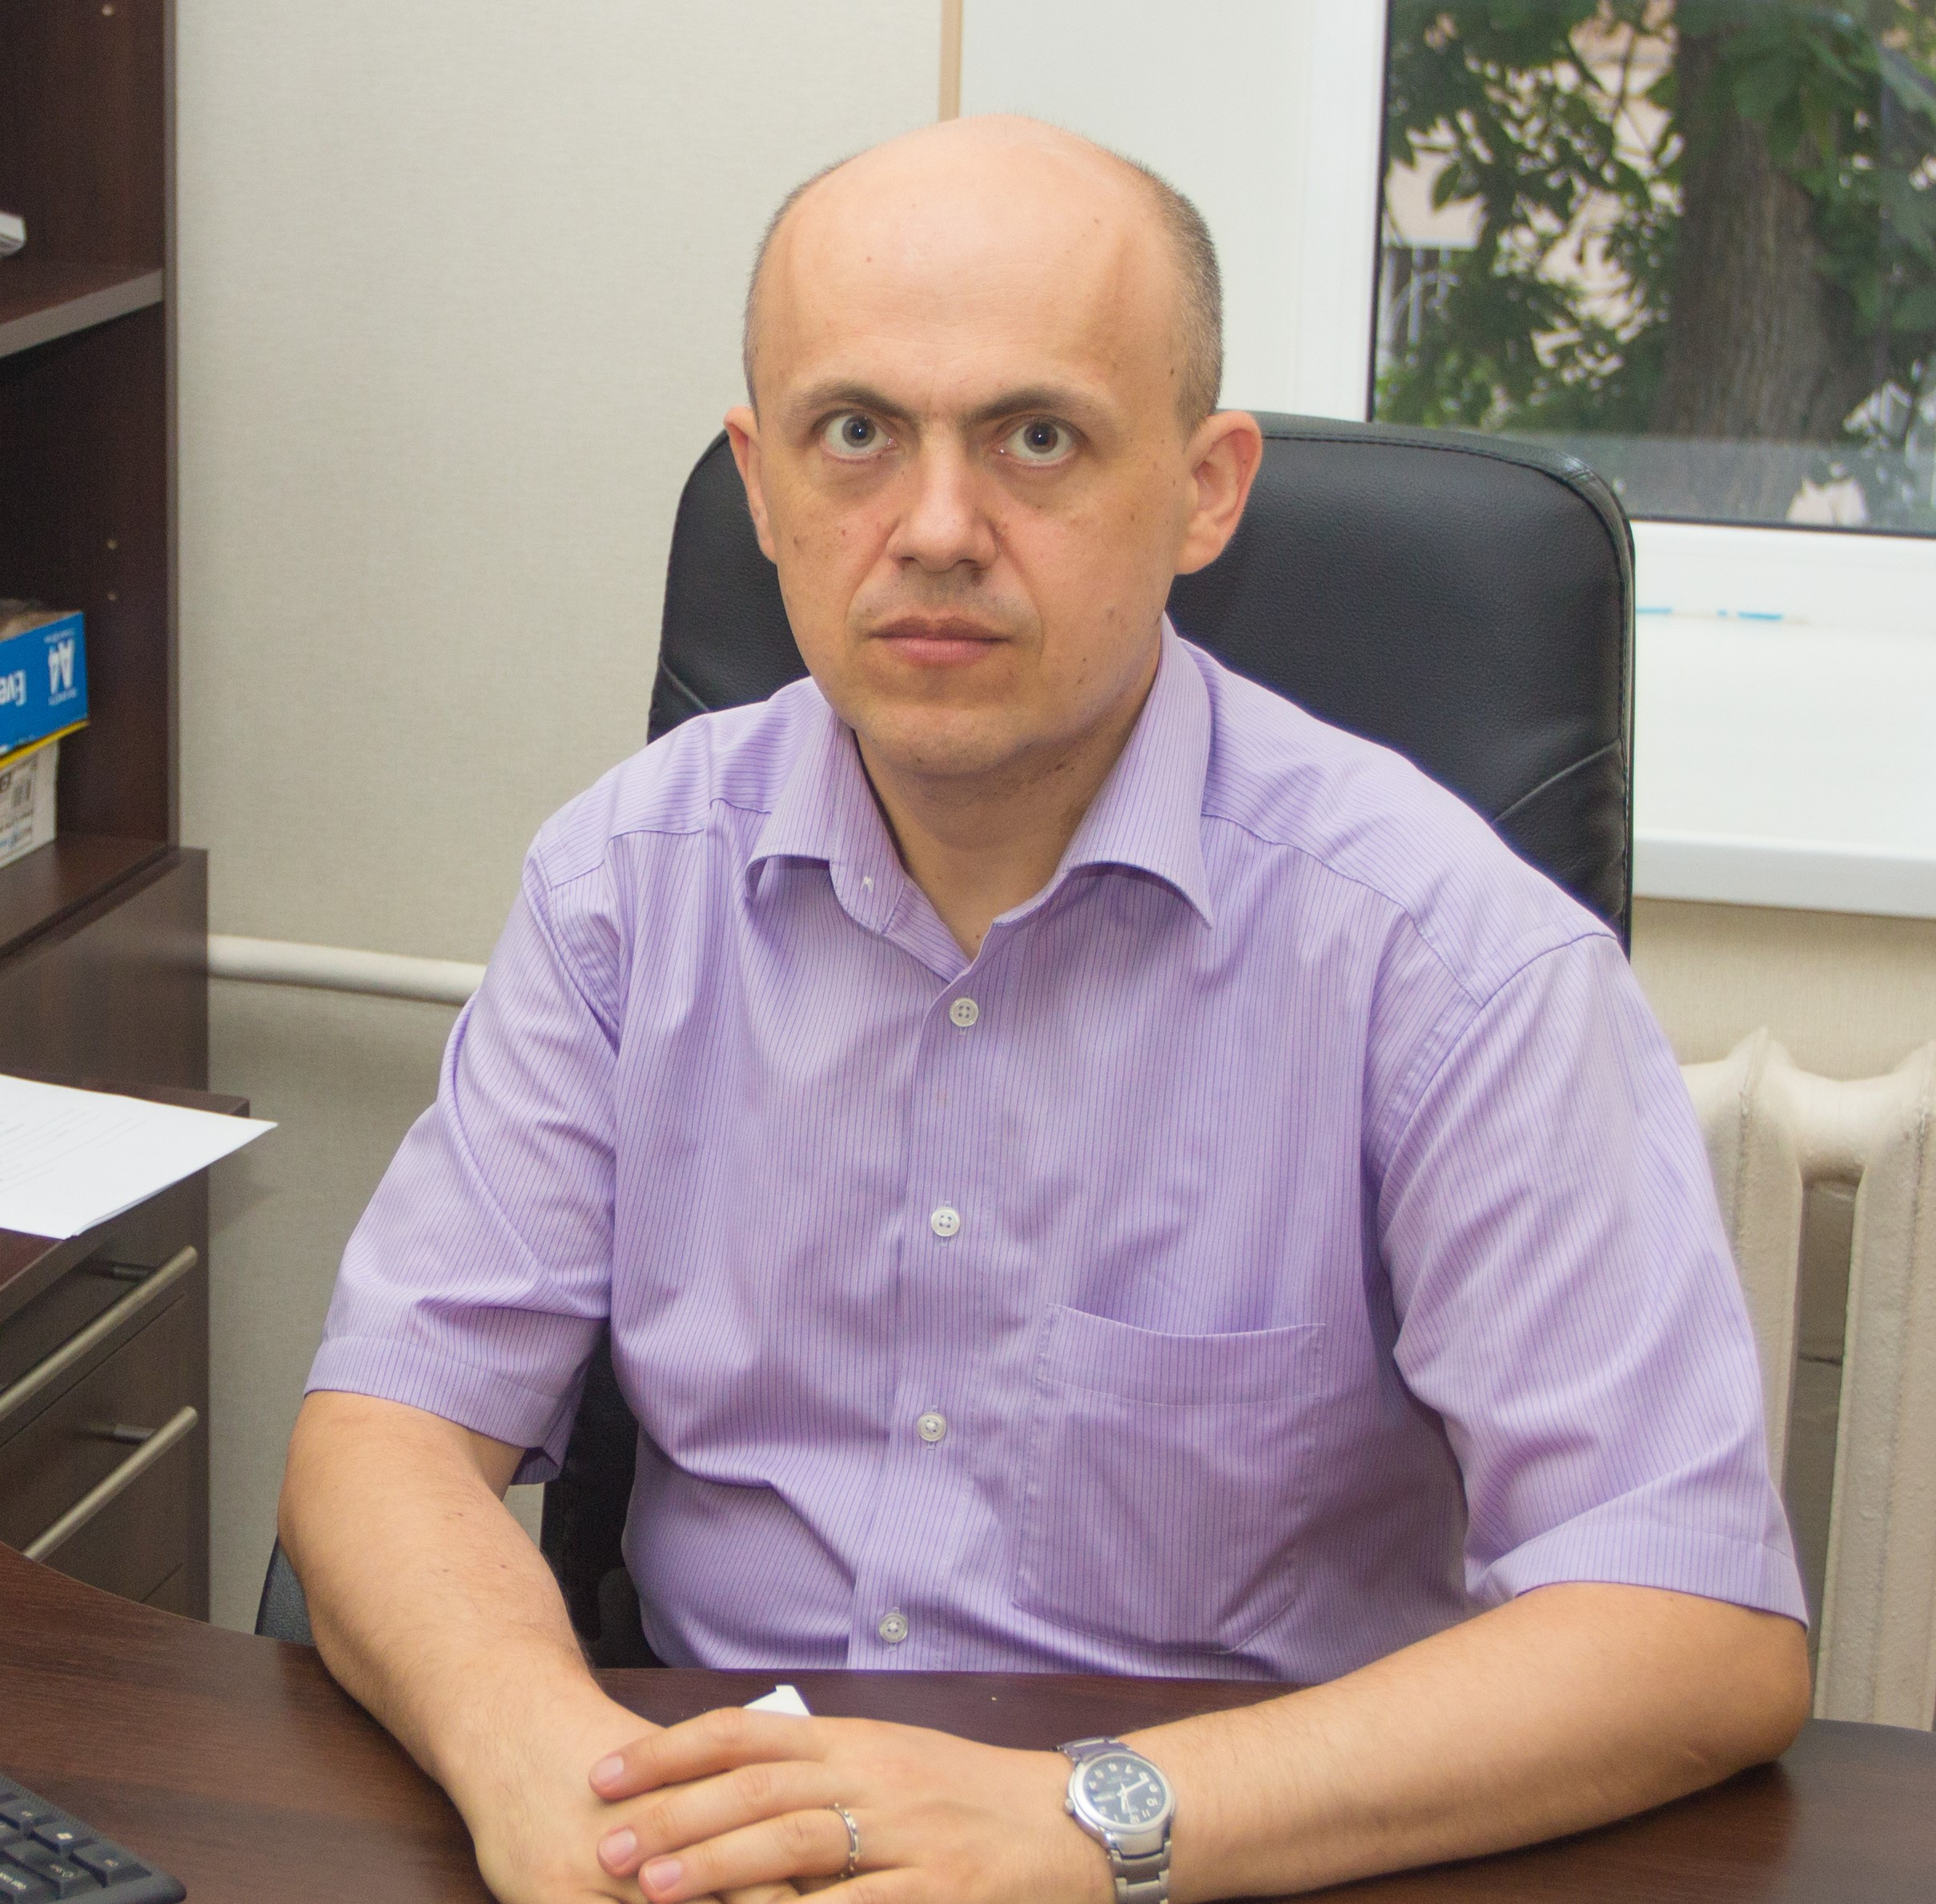 THE EXECUTIVE SECRETARY OF THE ADMISSIONS COMMITTEE E.S. BURIACHKIVSKII: ON THE RESULTS OF THE ADMISSIONS OF UKRAINIAN STUDENTS TO ODESSA NATIONAL MEDICAL UNIVERSITY 2019